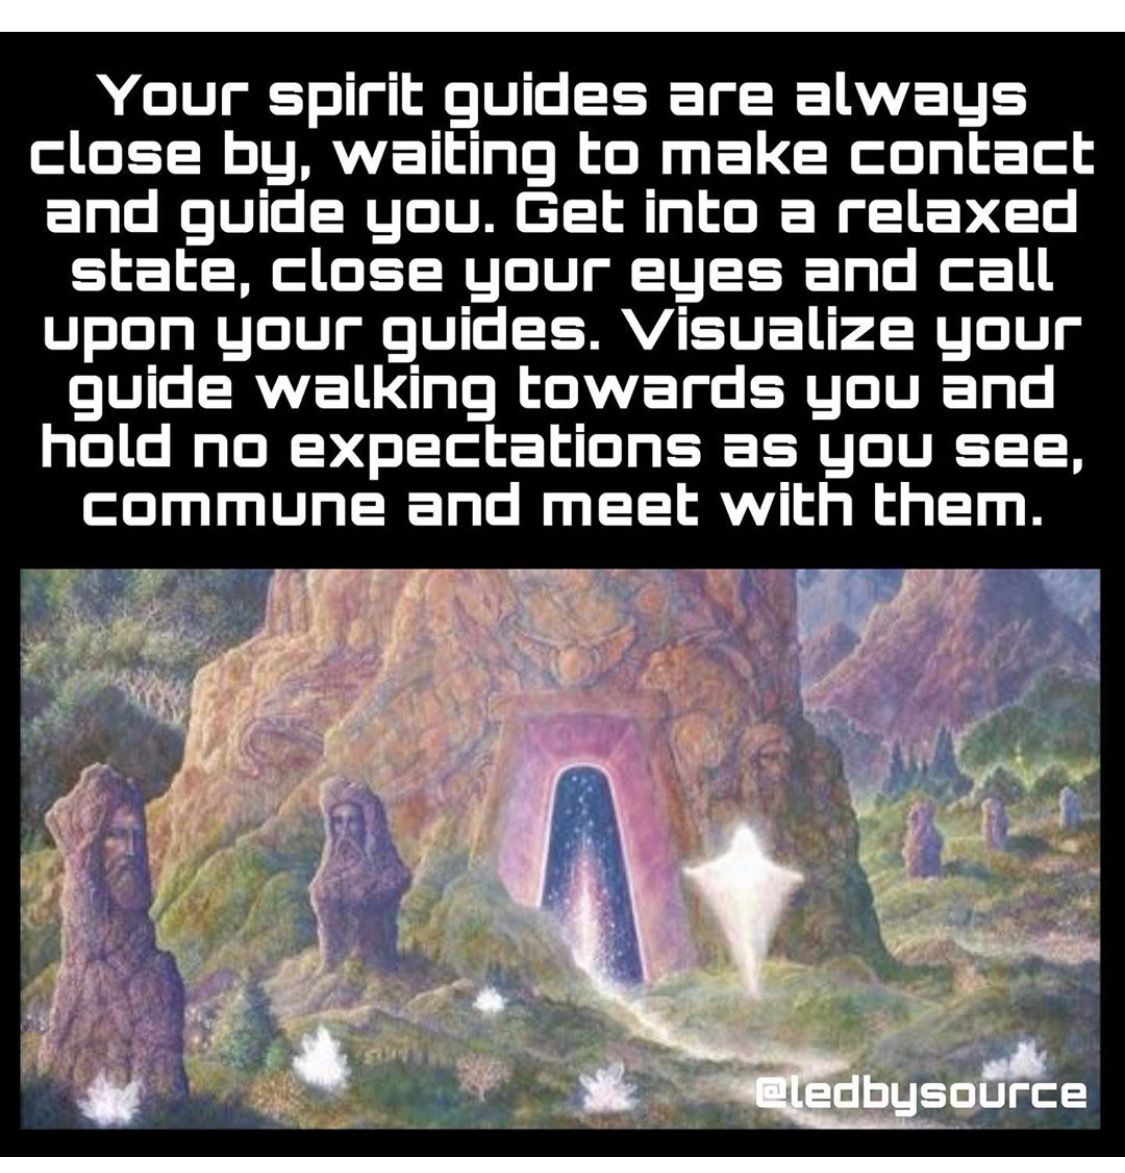 Pin by Sara Diaz on Spirituality (With images) | Spirit ...